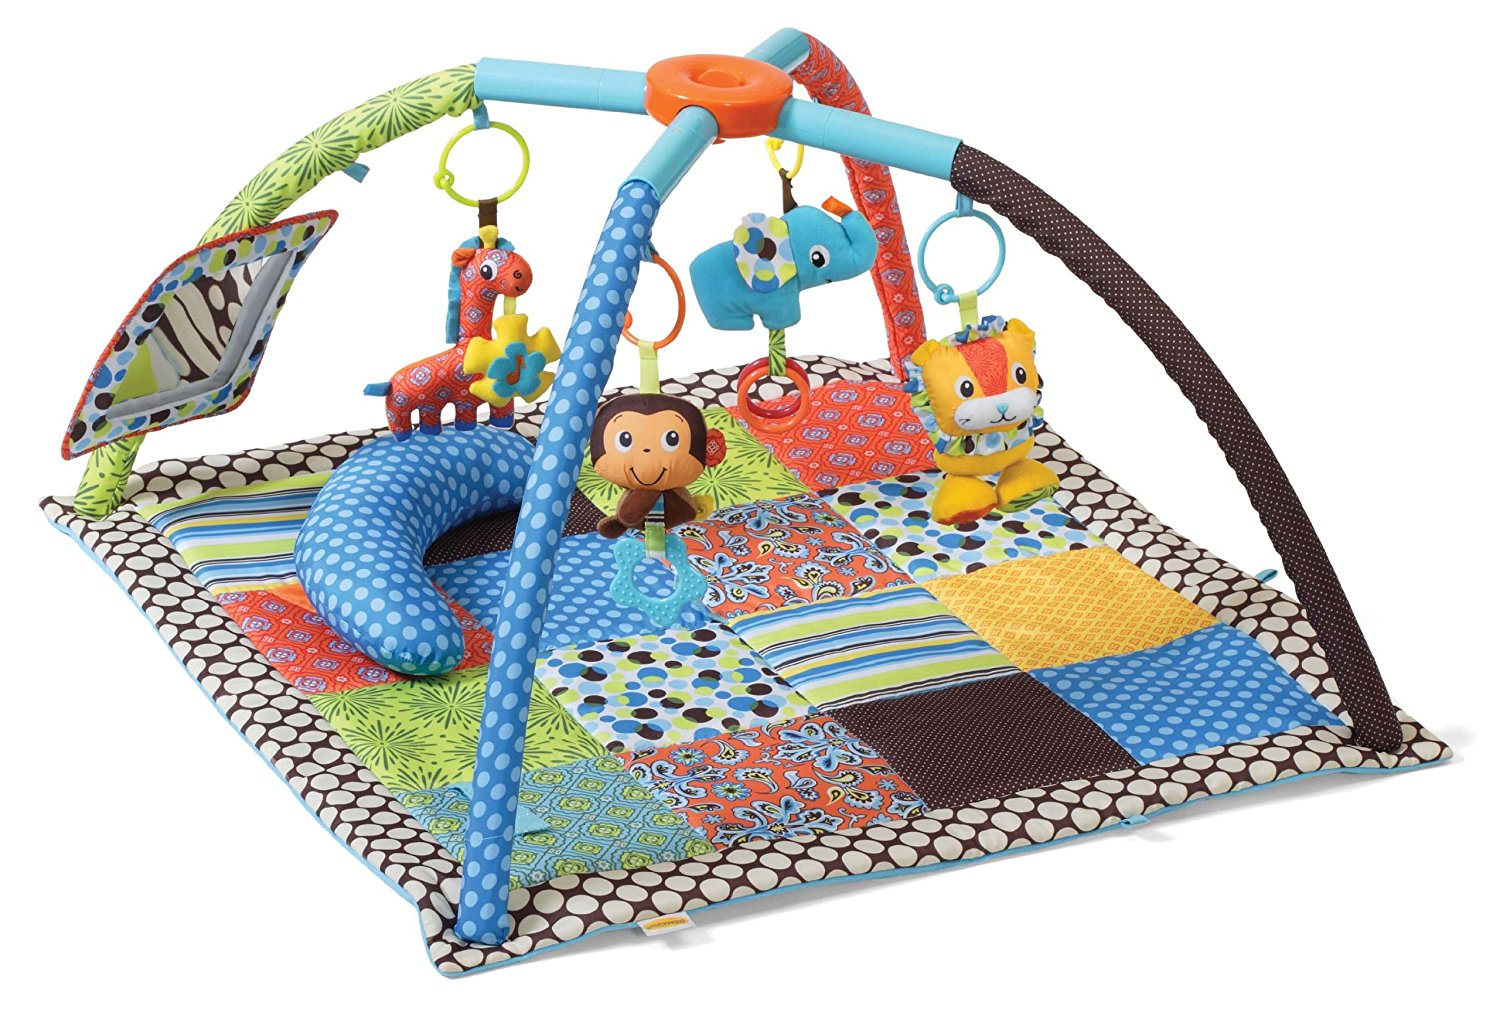 8 Best Baby Gym And Playmats In 2018 Buyers Guide Best Sorted